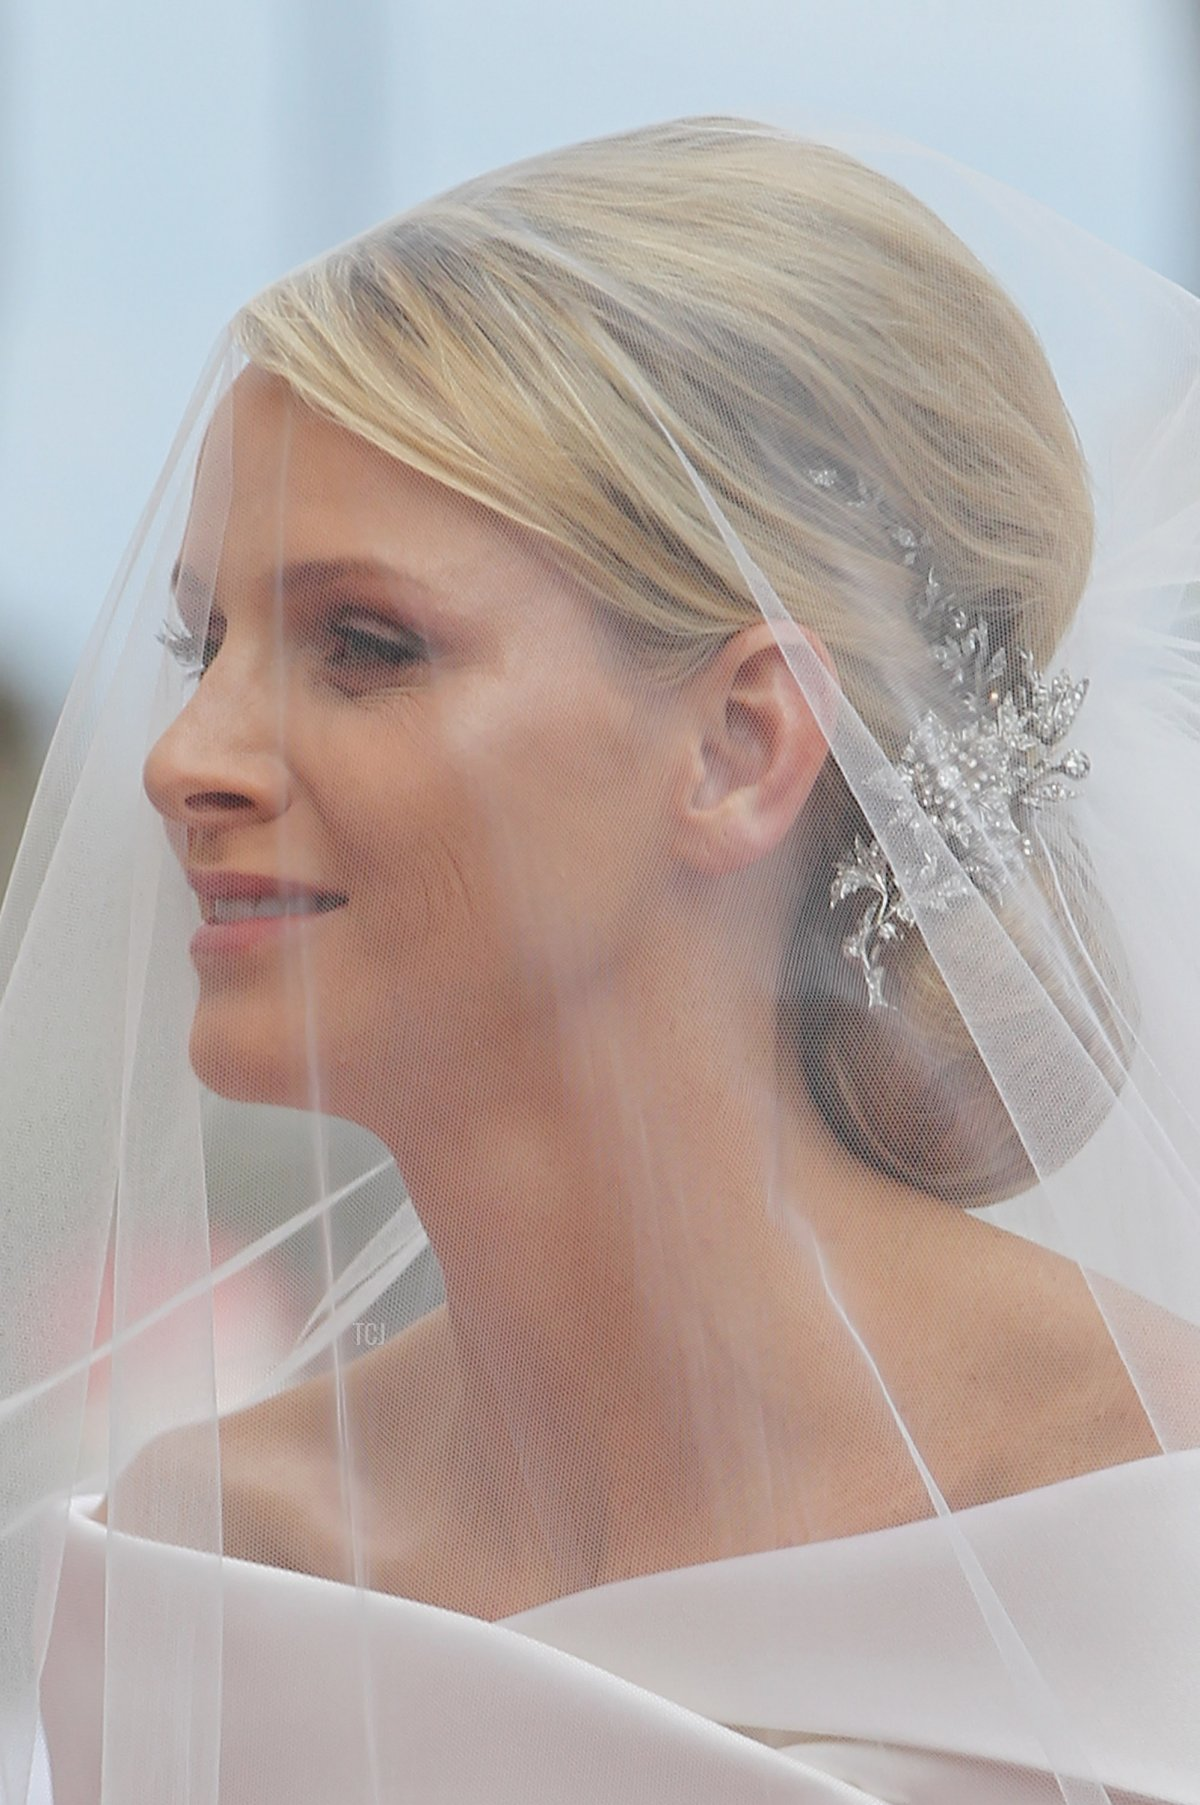 Princess Charlene of Monaco arrives for the religious ceremony of her Royal Wedding to Prince Albert II of Monaco in the main courtyard at Prince's Palace on July 2, 2011 in Monaco